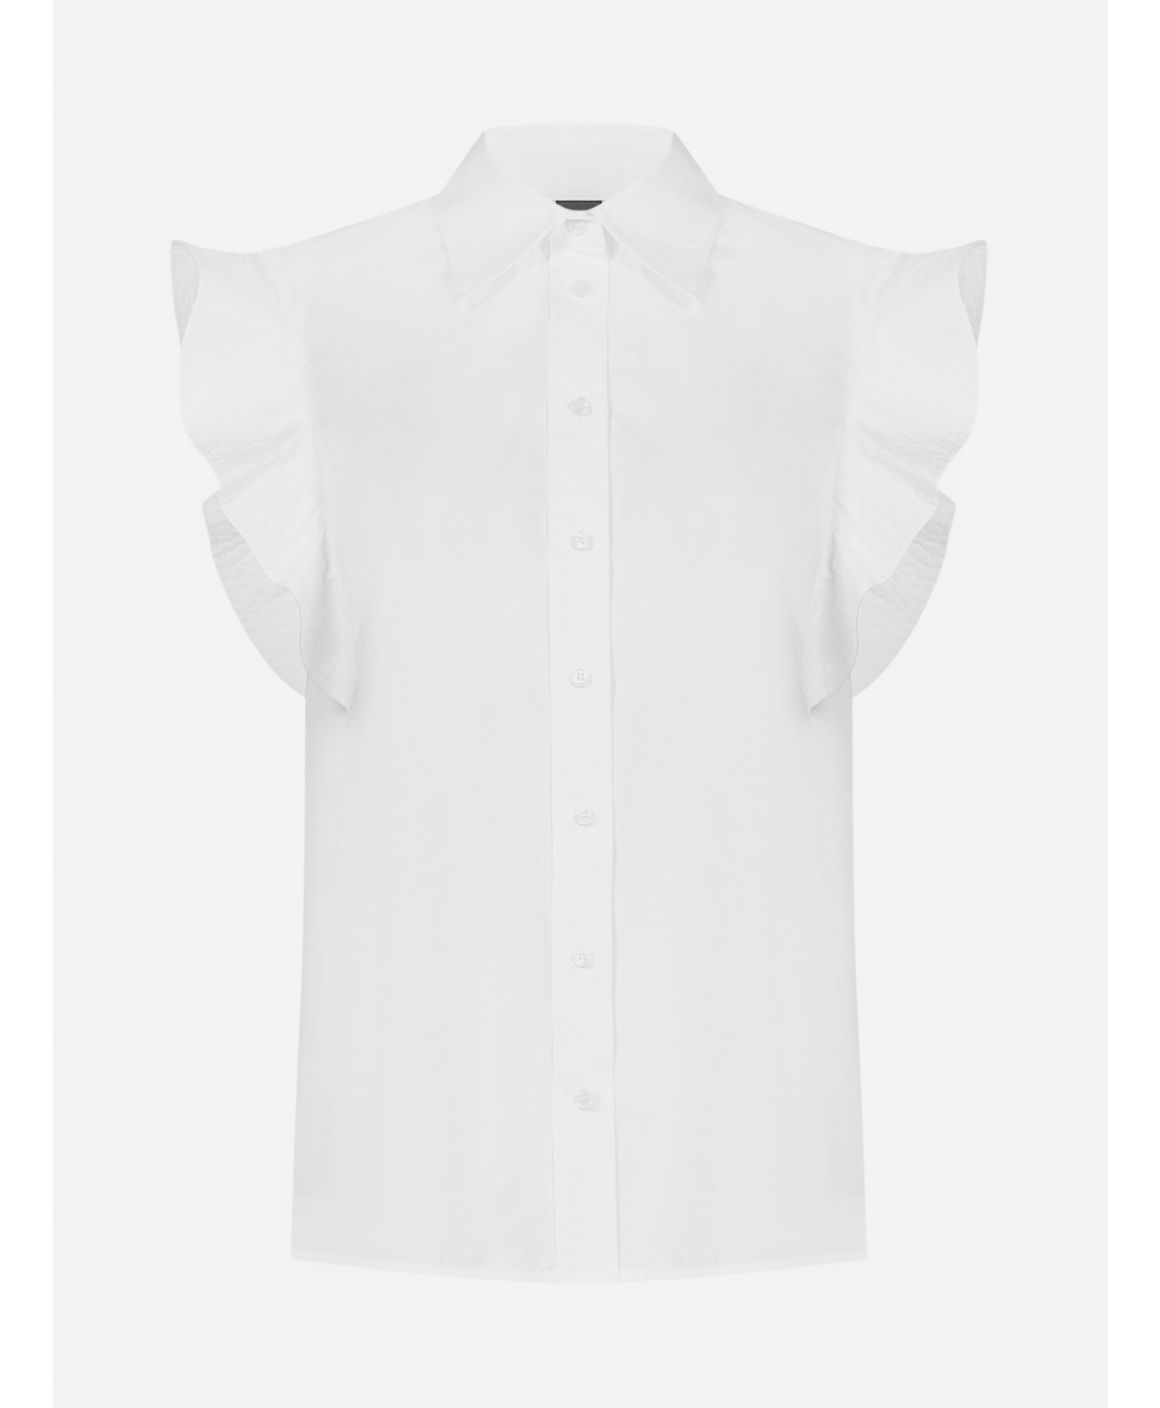 Nakoma cotton shirt